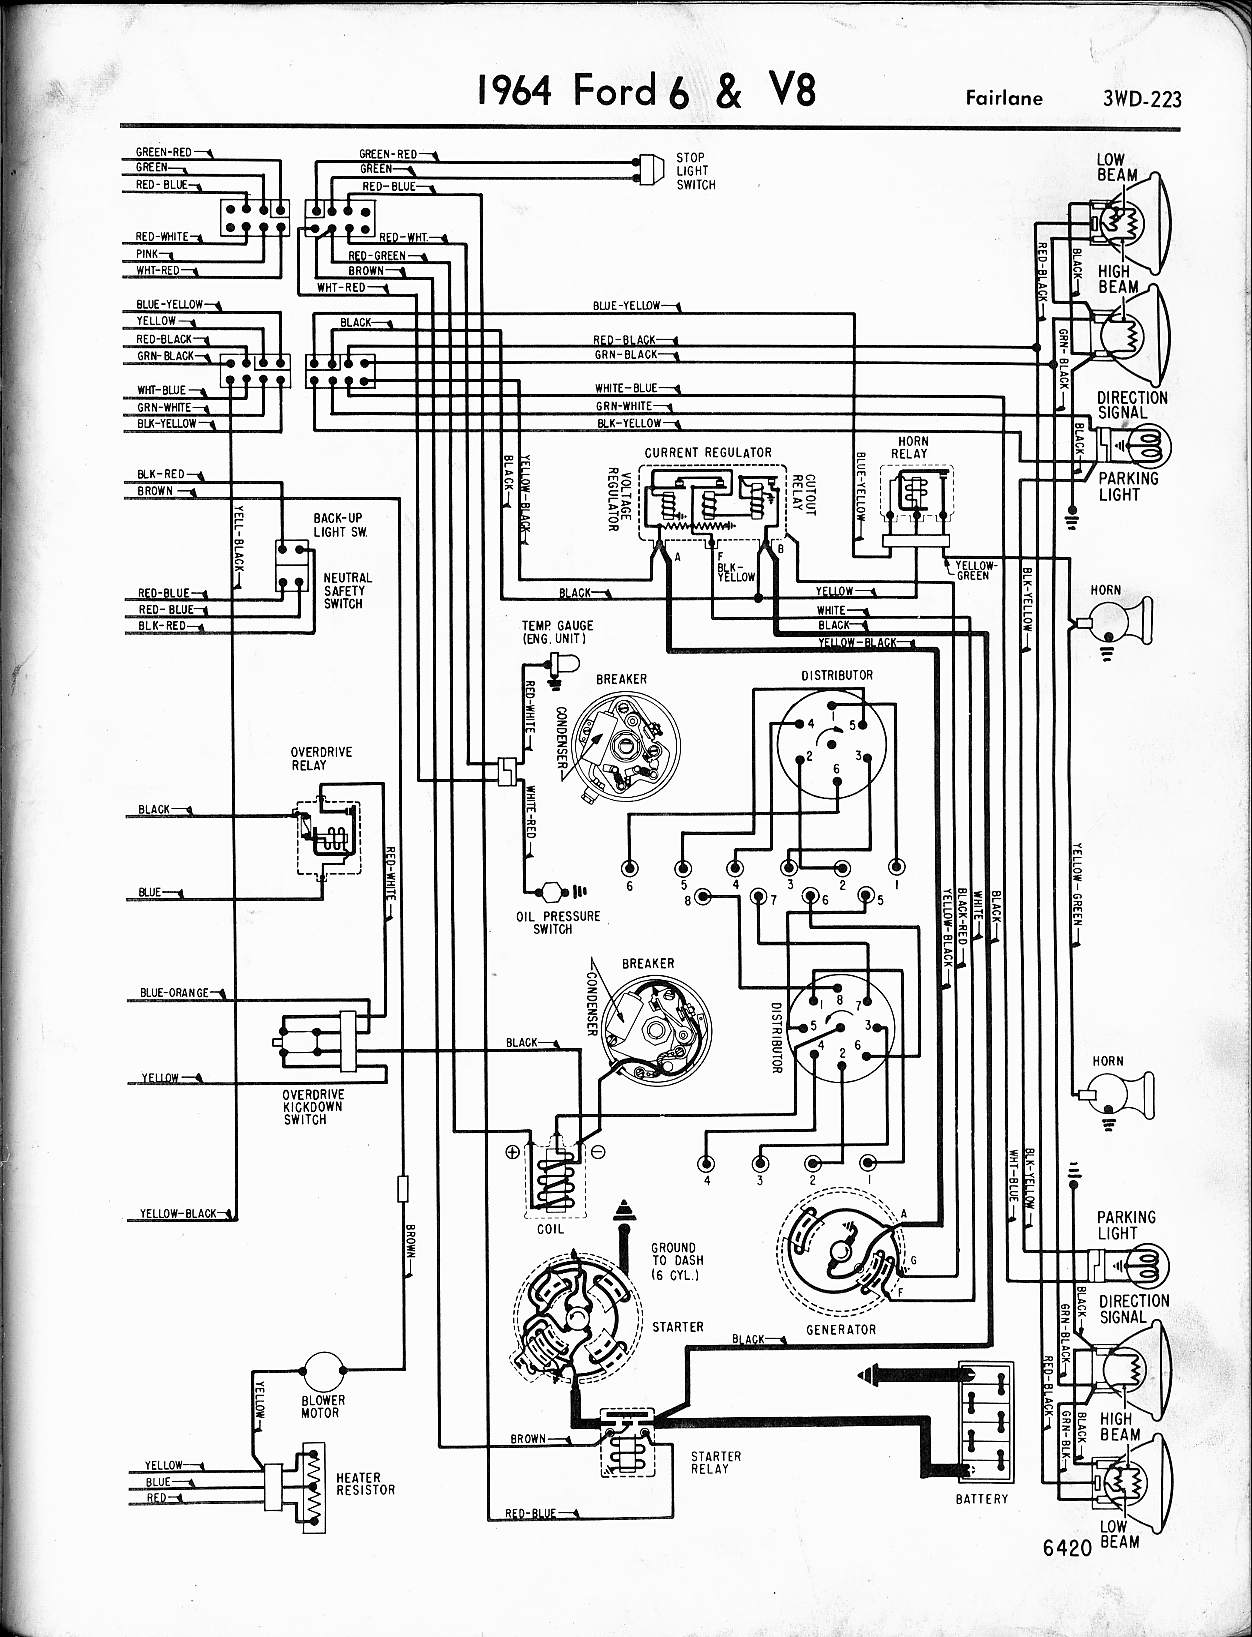 1964 Fairlane Wiring Diagram Manual Of Flh 57 65 Ford Diagrams Rh Oldcarmanualproject Com